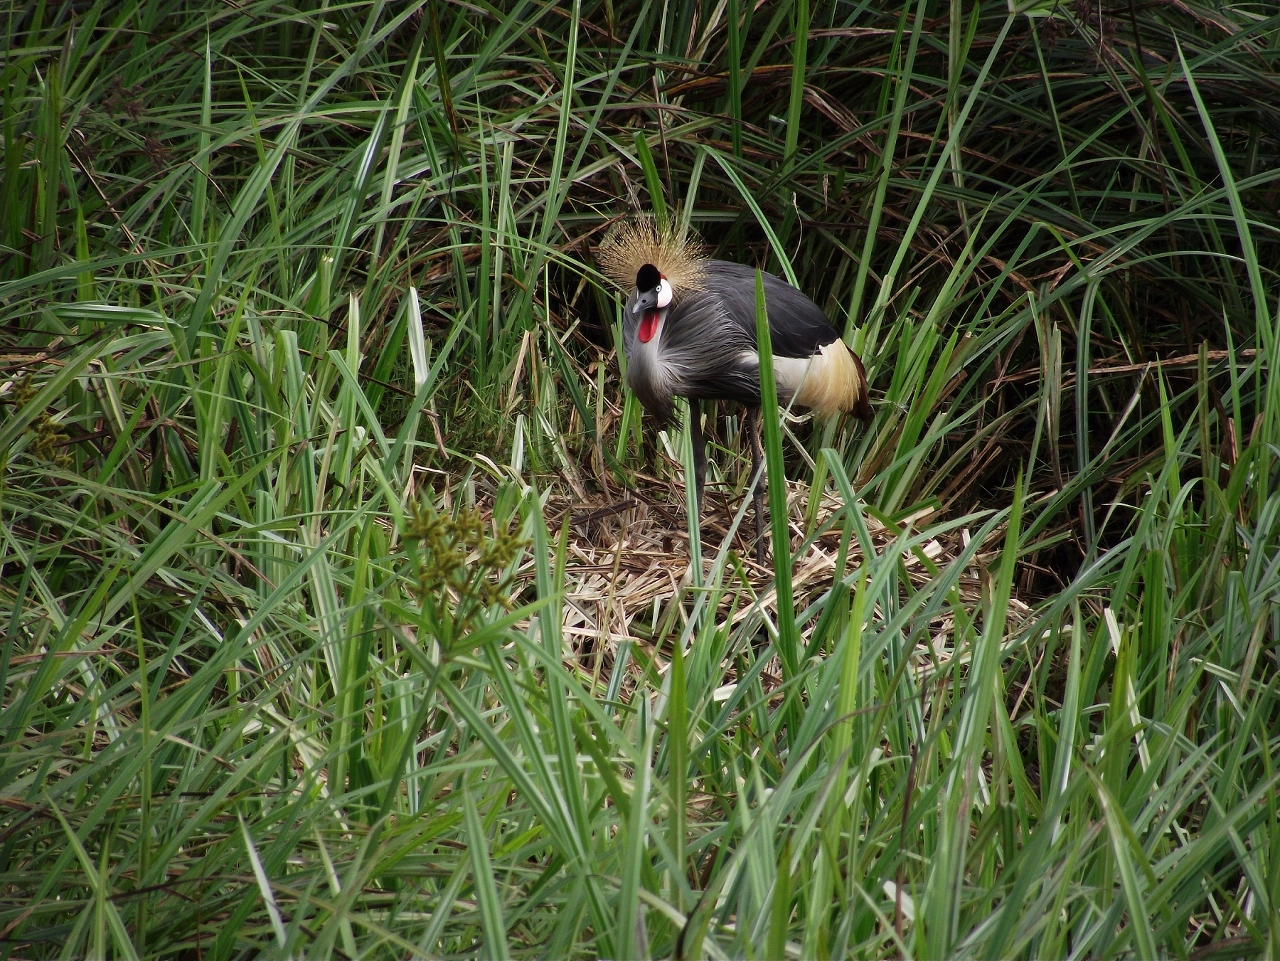 Grey Crowned Crane on its nest Copyright: International Crane Foundation / Endangered Wildlife Trust Partnership